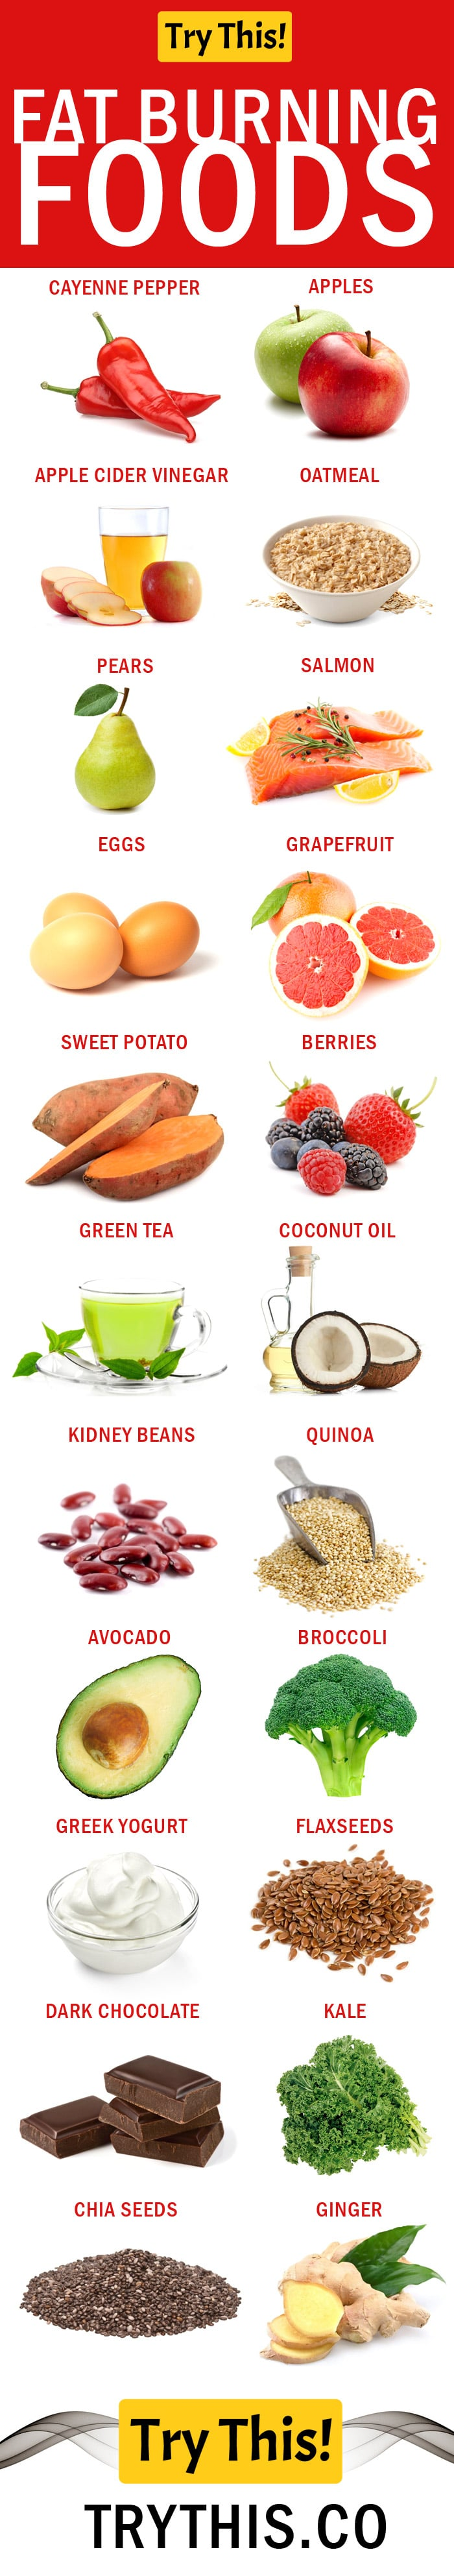 Try this Fat Burning Foods